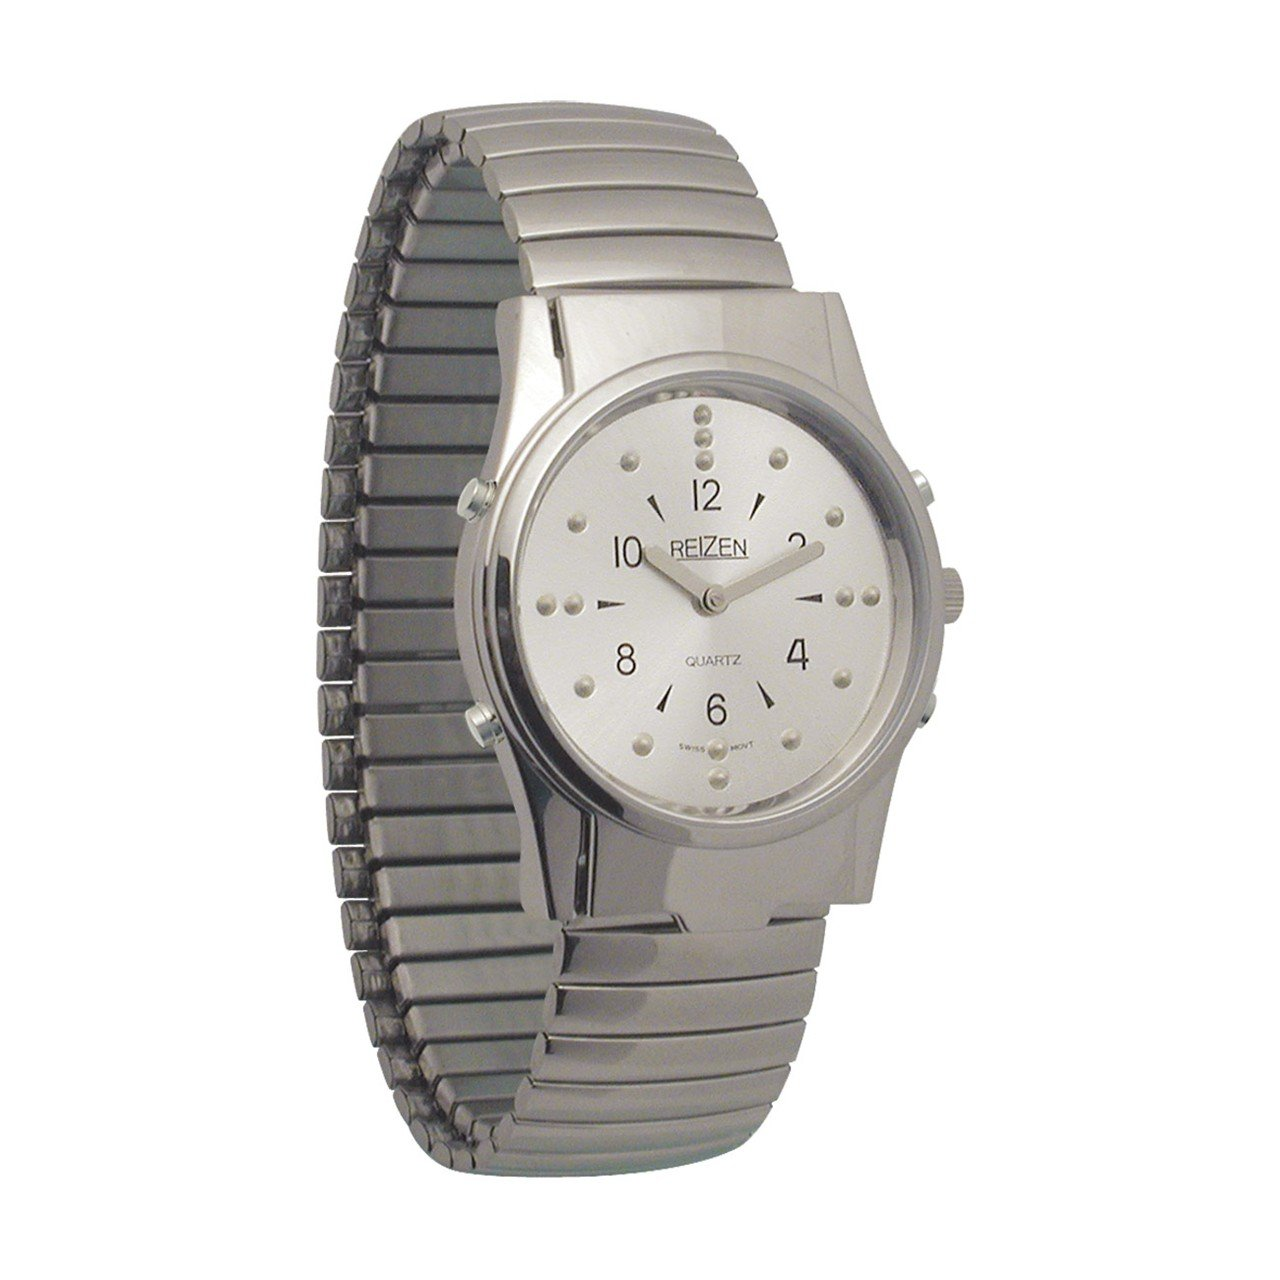 Mens Chrome Braille and Talking Watch - Exp Band by Reizen